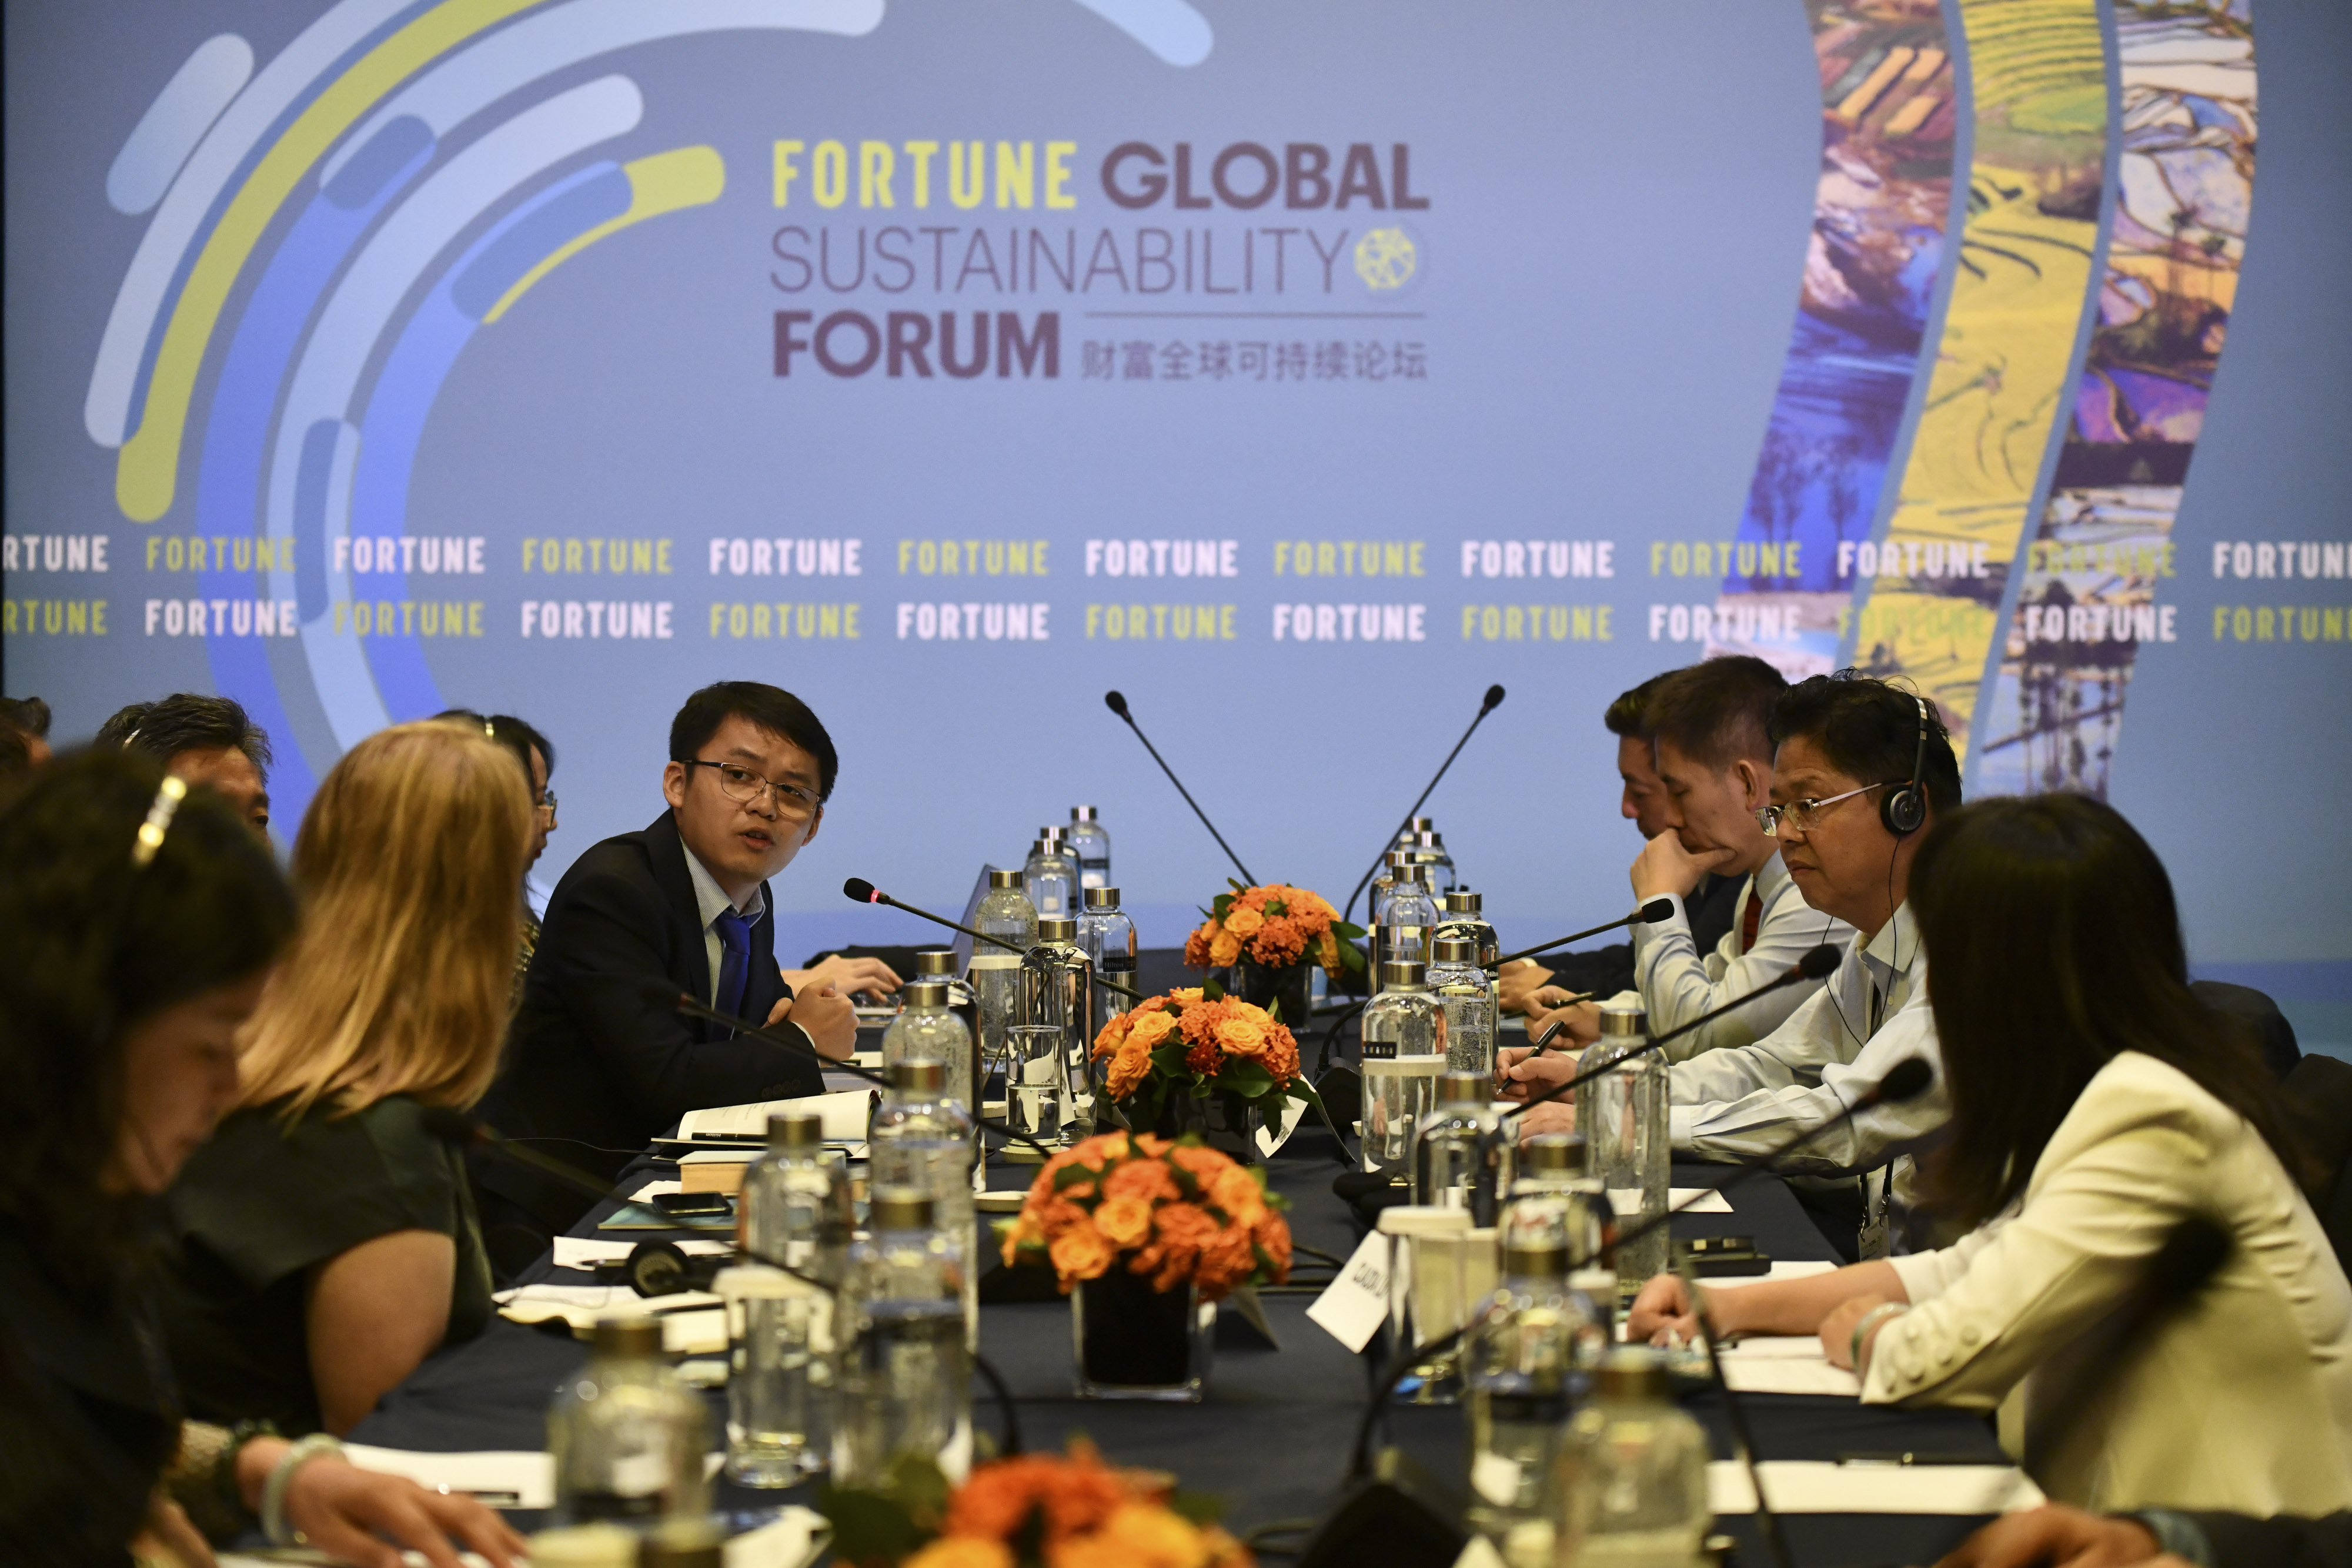 024B Fortune Global Sustainability Forum 2019 Thursday, September 5th, 2019 Yunnan, China 2:00pm-2:50pm CONCURRENT SESSIONS: BEHIND THE GREEN CURTAIN Choose 1 of 3 SMART WHEELS: WHO'S LEADING THE CHARGE? What's the potential, and what are the pitfalls, on the road from the gasoline-powered present to an electric-car future? How can the broad transportation system accommodate and encourage the pump-to-plug shift? A discussion with executives trying to speed the transition. Christina Lampe-Onnerud, Founder and CEO, Cadenza Innovation Freeman Shen, Founder, Chairman, and CEO, WM Motor Zhang Congming, General Manager and Vice Chairman, Yunnan Communications & Investment Co. Andy Zheng, Founder, Aspiring Citizens Cleantech; Adjunct Fellow, Lee Kuan Yew Centre for Innovative Cities Interviewer: Katherine Dunn, Associate Editor, FORTUNE Photograph by Stefen Chow/Fortune